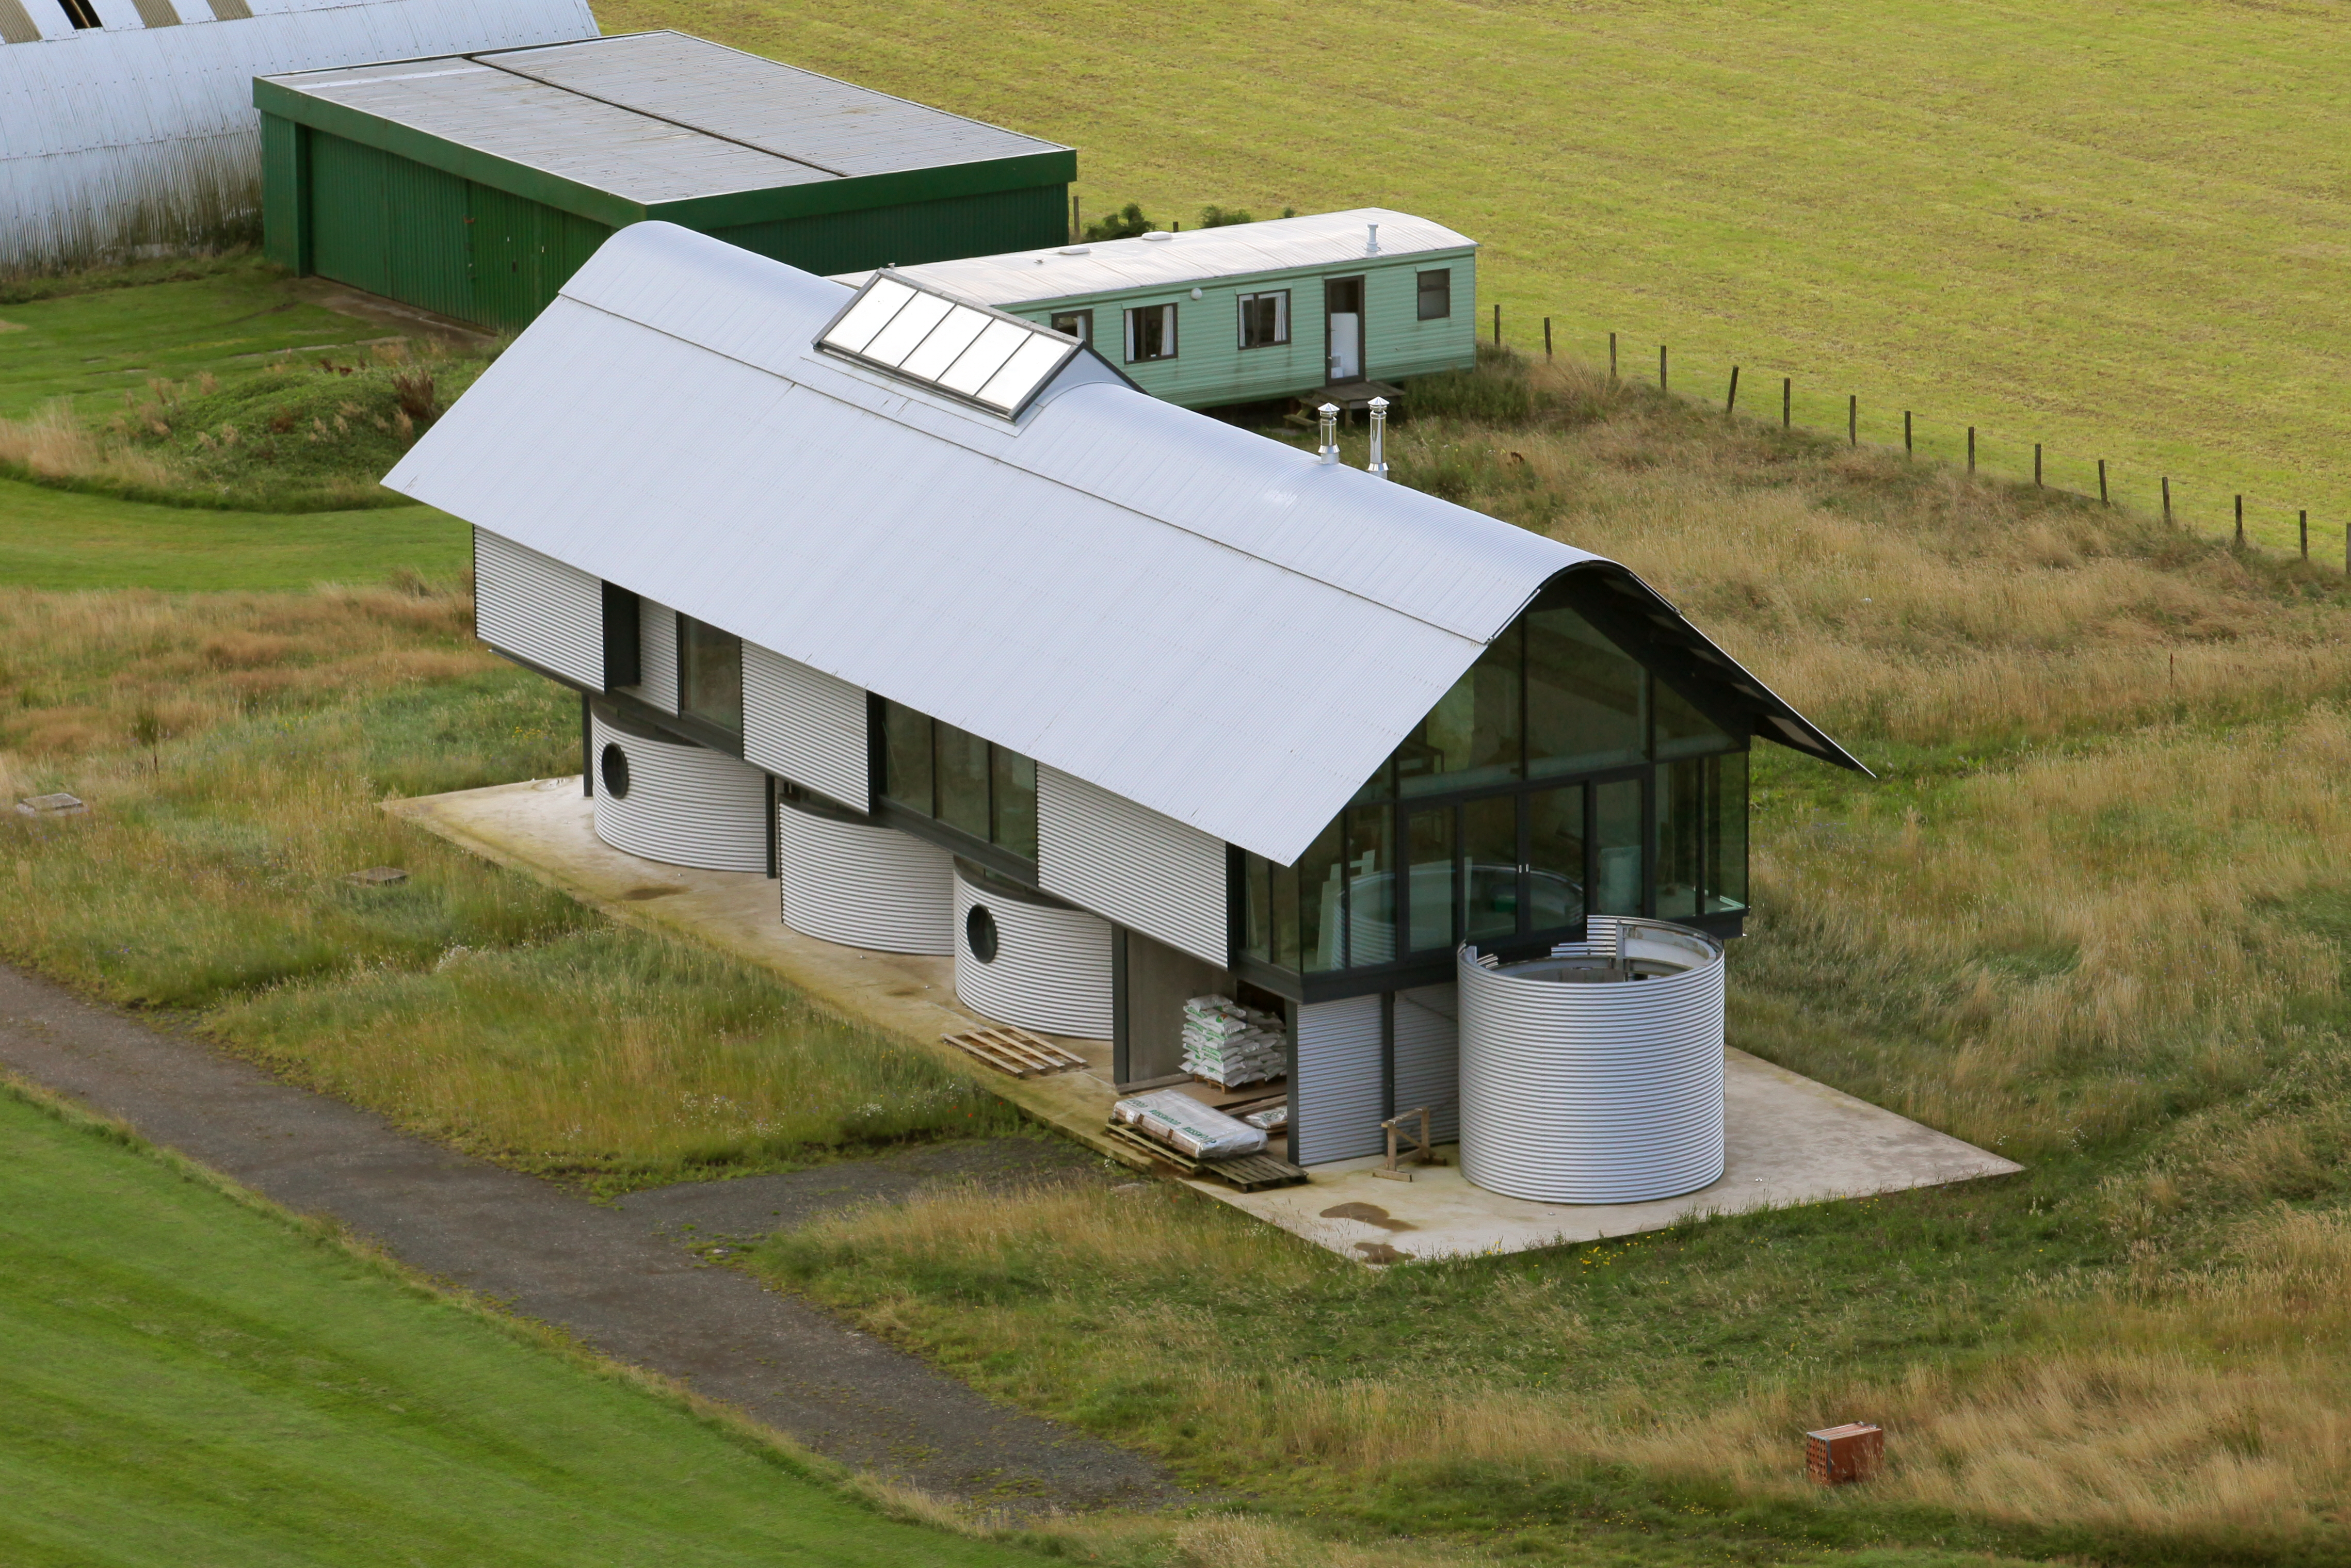 Grand designs airfield house scotland